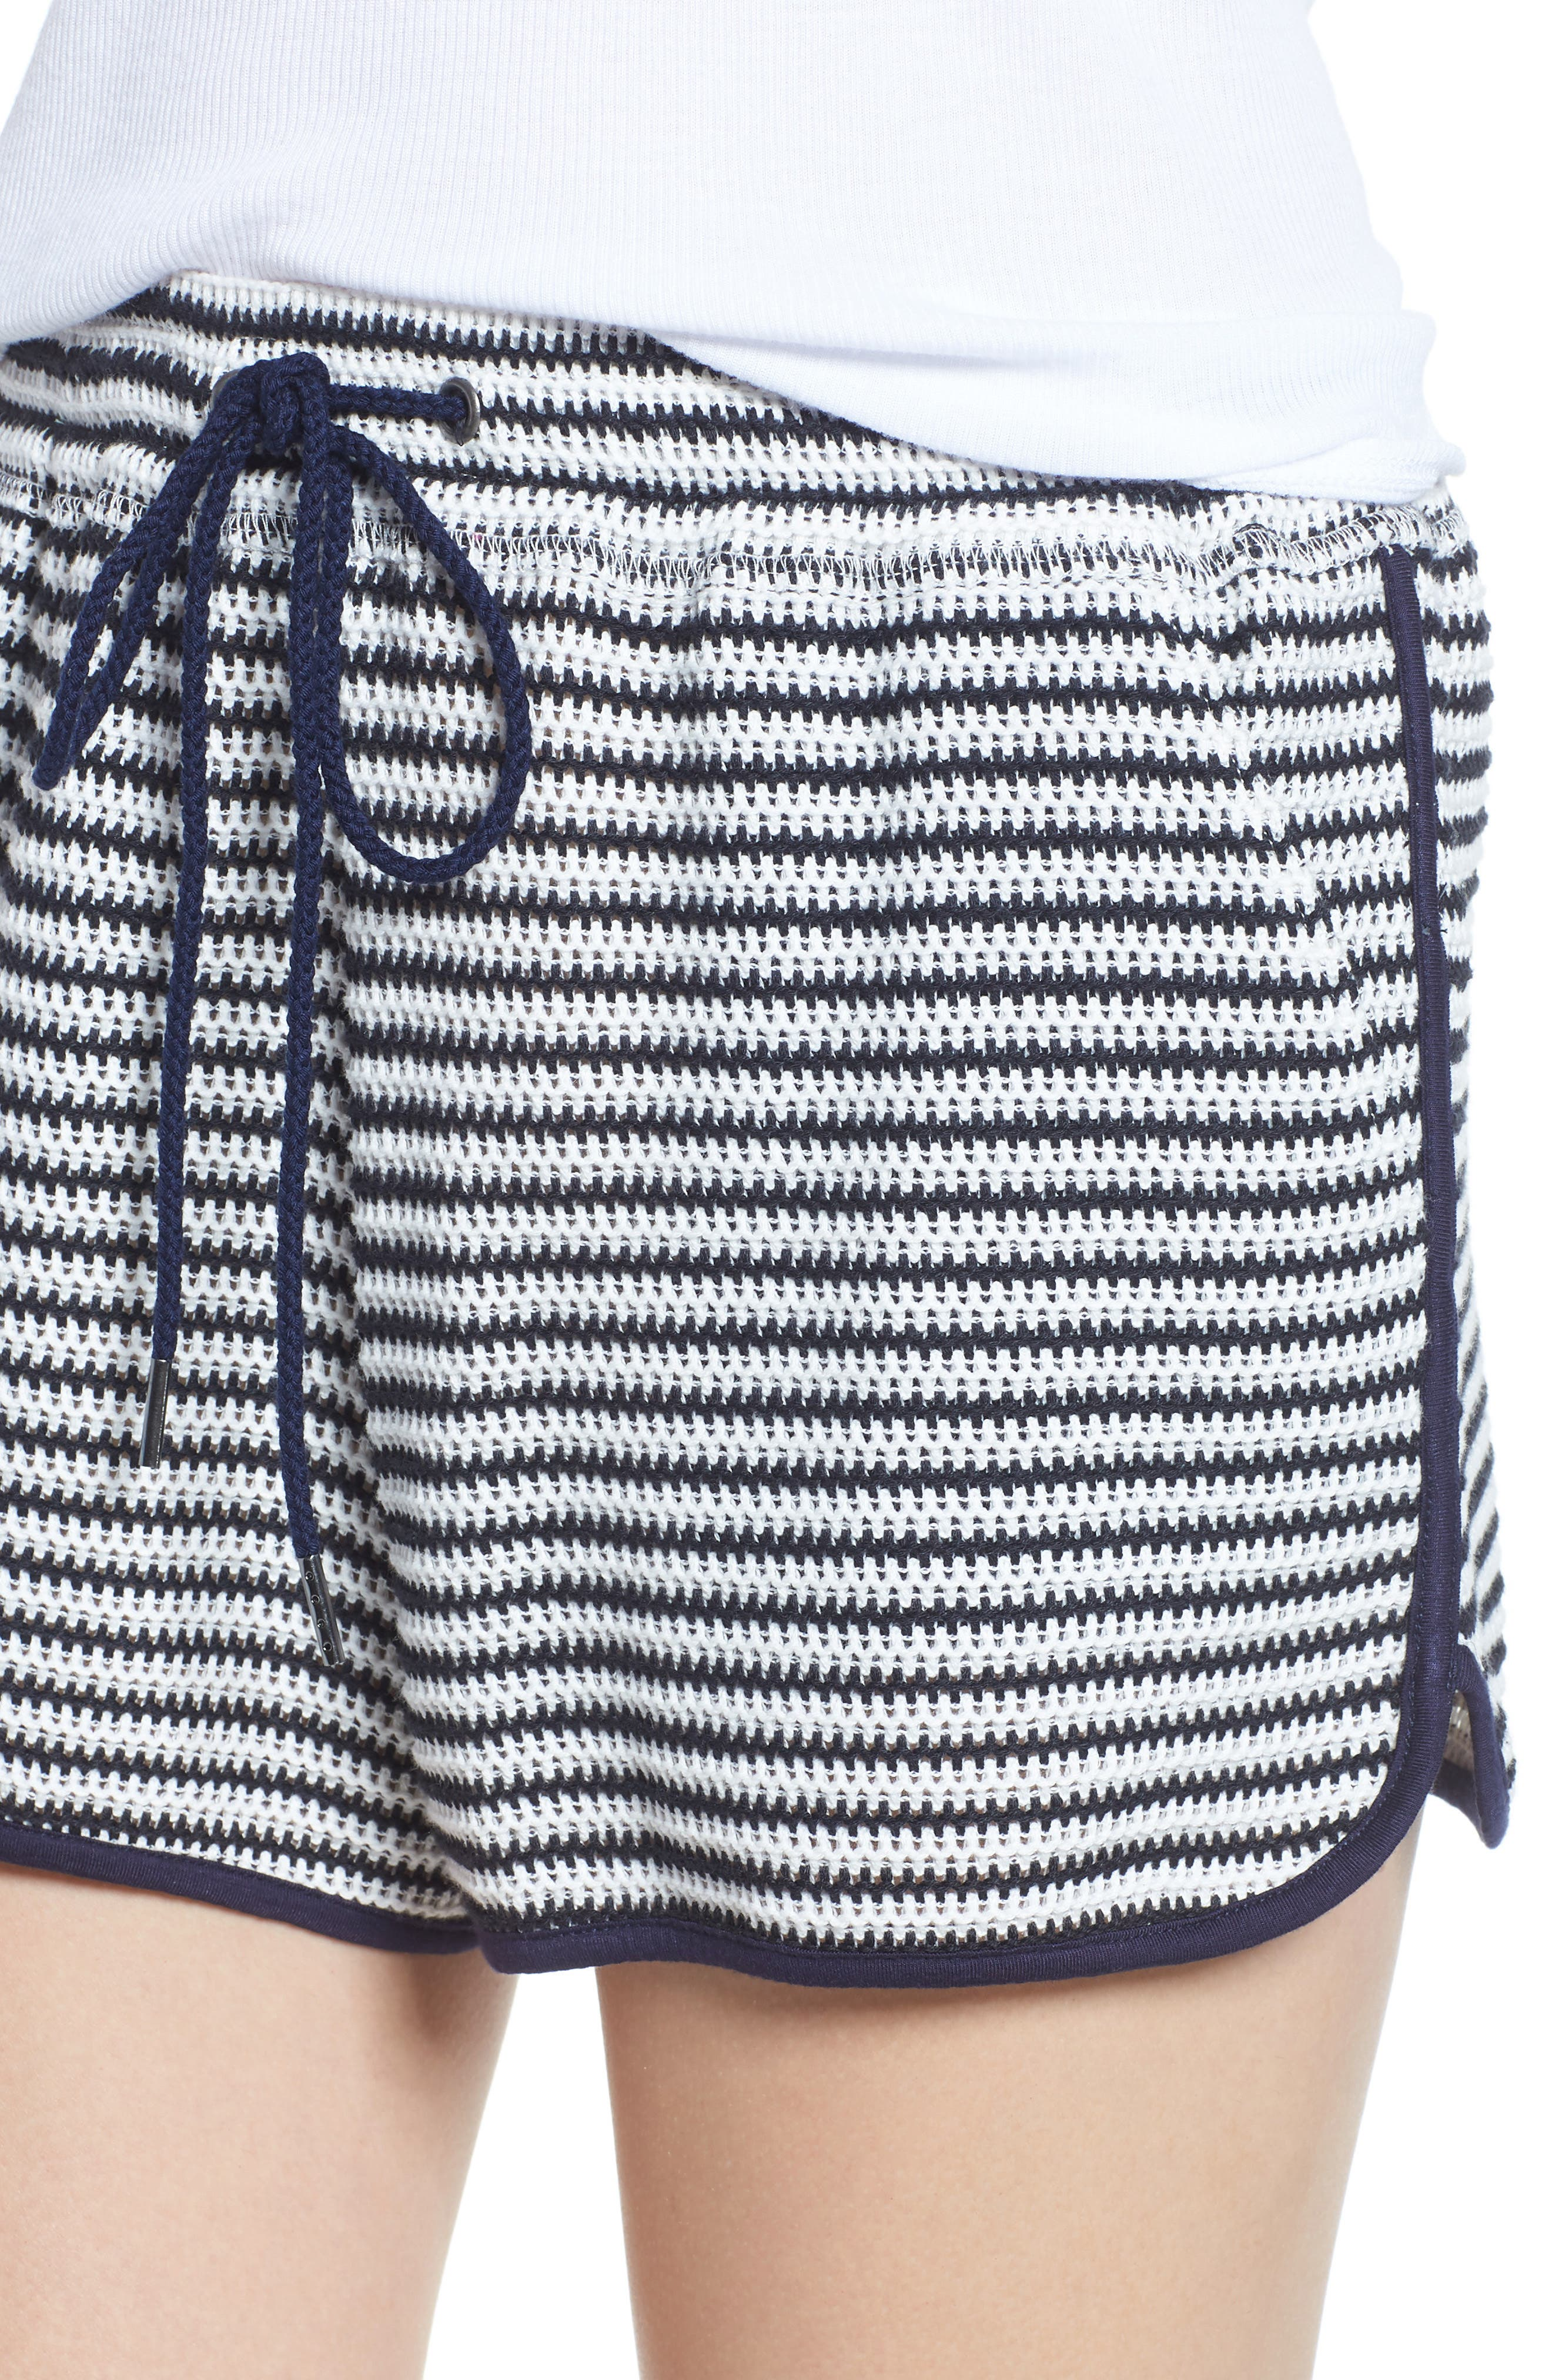 Stripe Shorts,                             Alternate thumbnail 4, color,                             NAVY/ WHITE